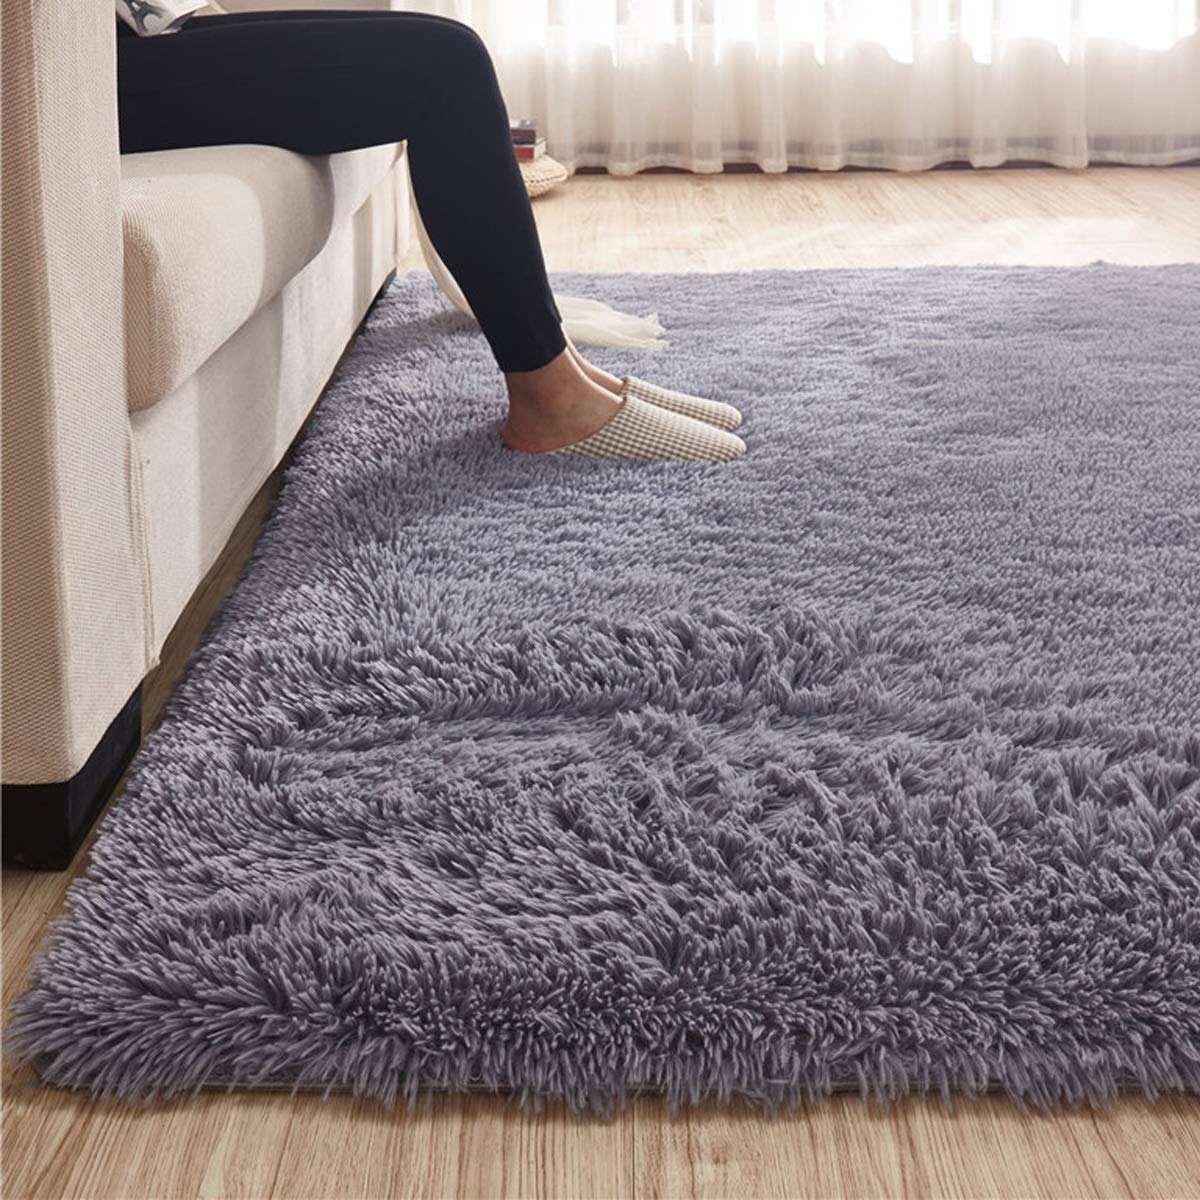 Candeal 120x80cm Fluffy Area Rugs Anti Skid Yoga Carpet For Living Room Rugs Bedroom Silver Grey Buy Online In Bangladesh Can Deal Products In Bangladesh See Prices Reviews And Free Delivery